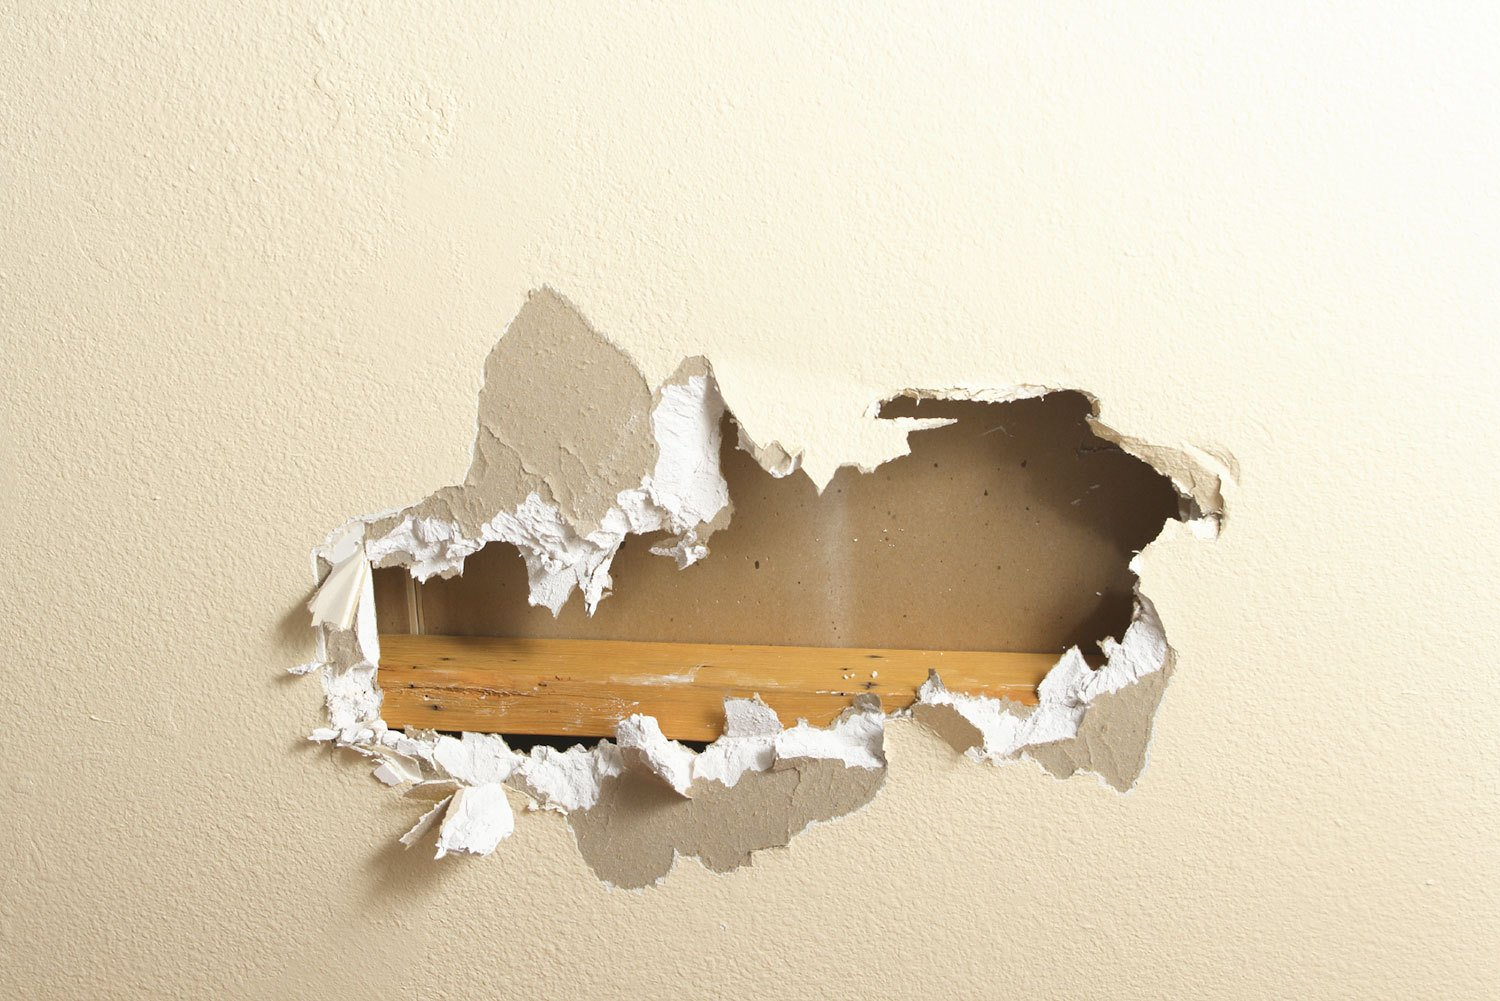 Drywall Repair San Francisco Bay Area